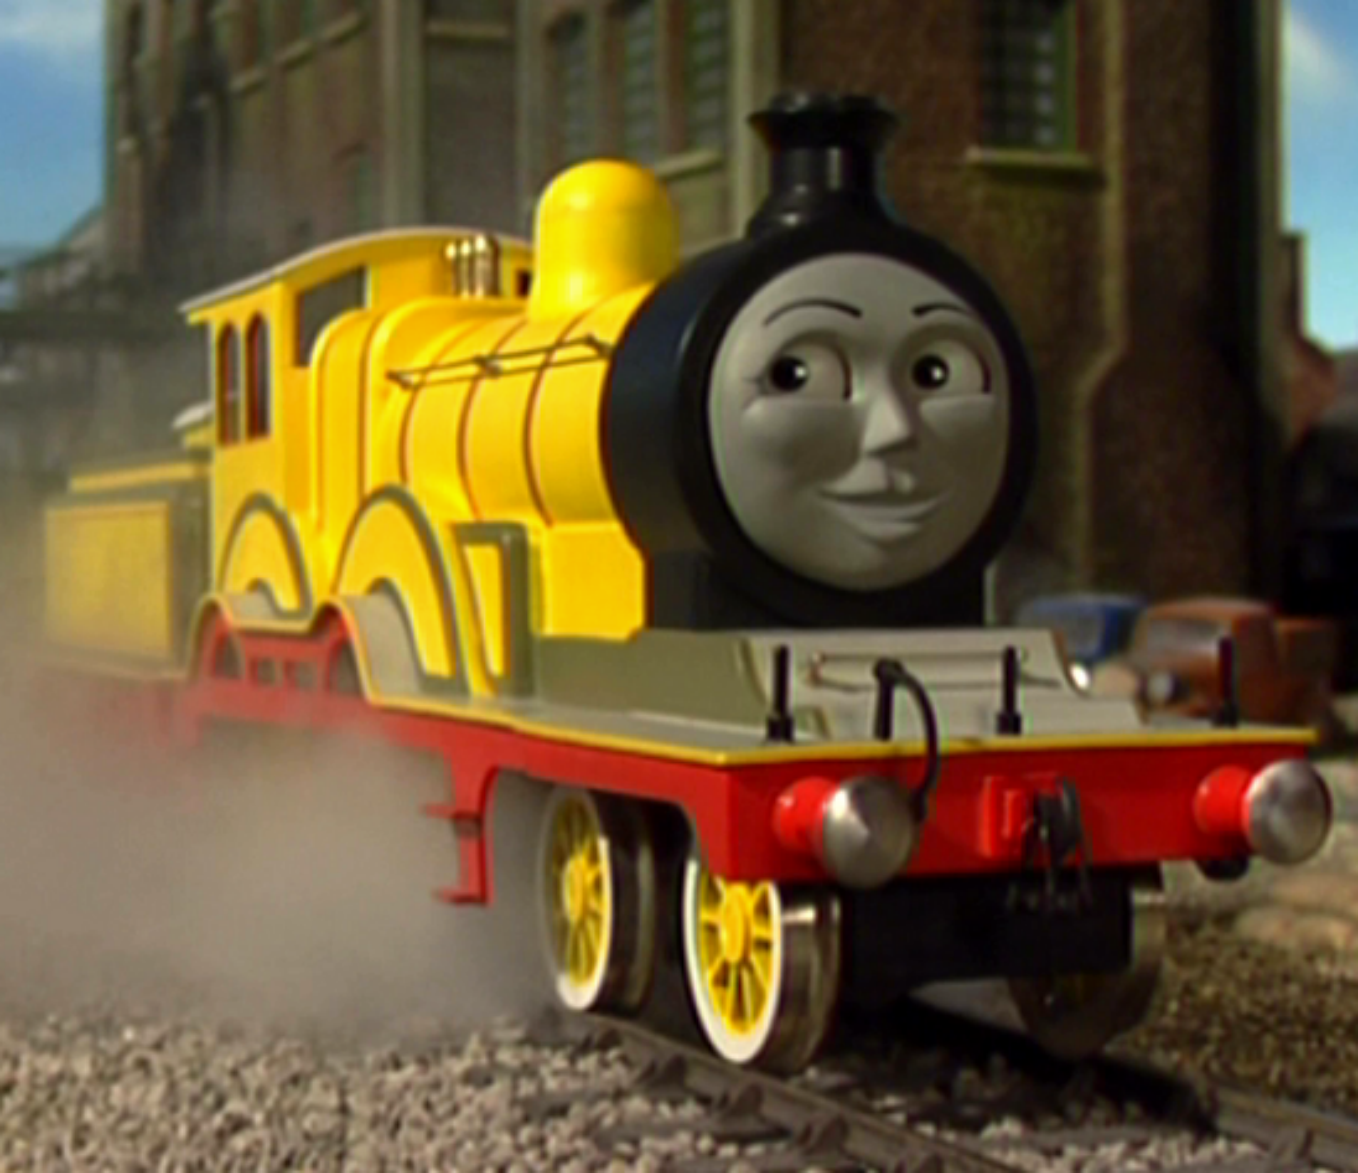 Image molly the yellow engine thomas and friendsg the filemolly the yellow engine thomas and friendsg thecheapjerseys Image collections